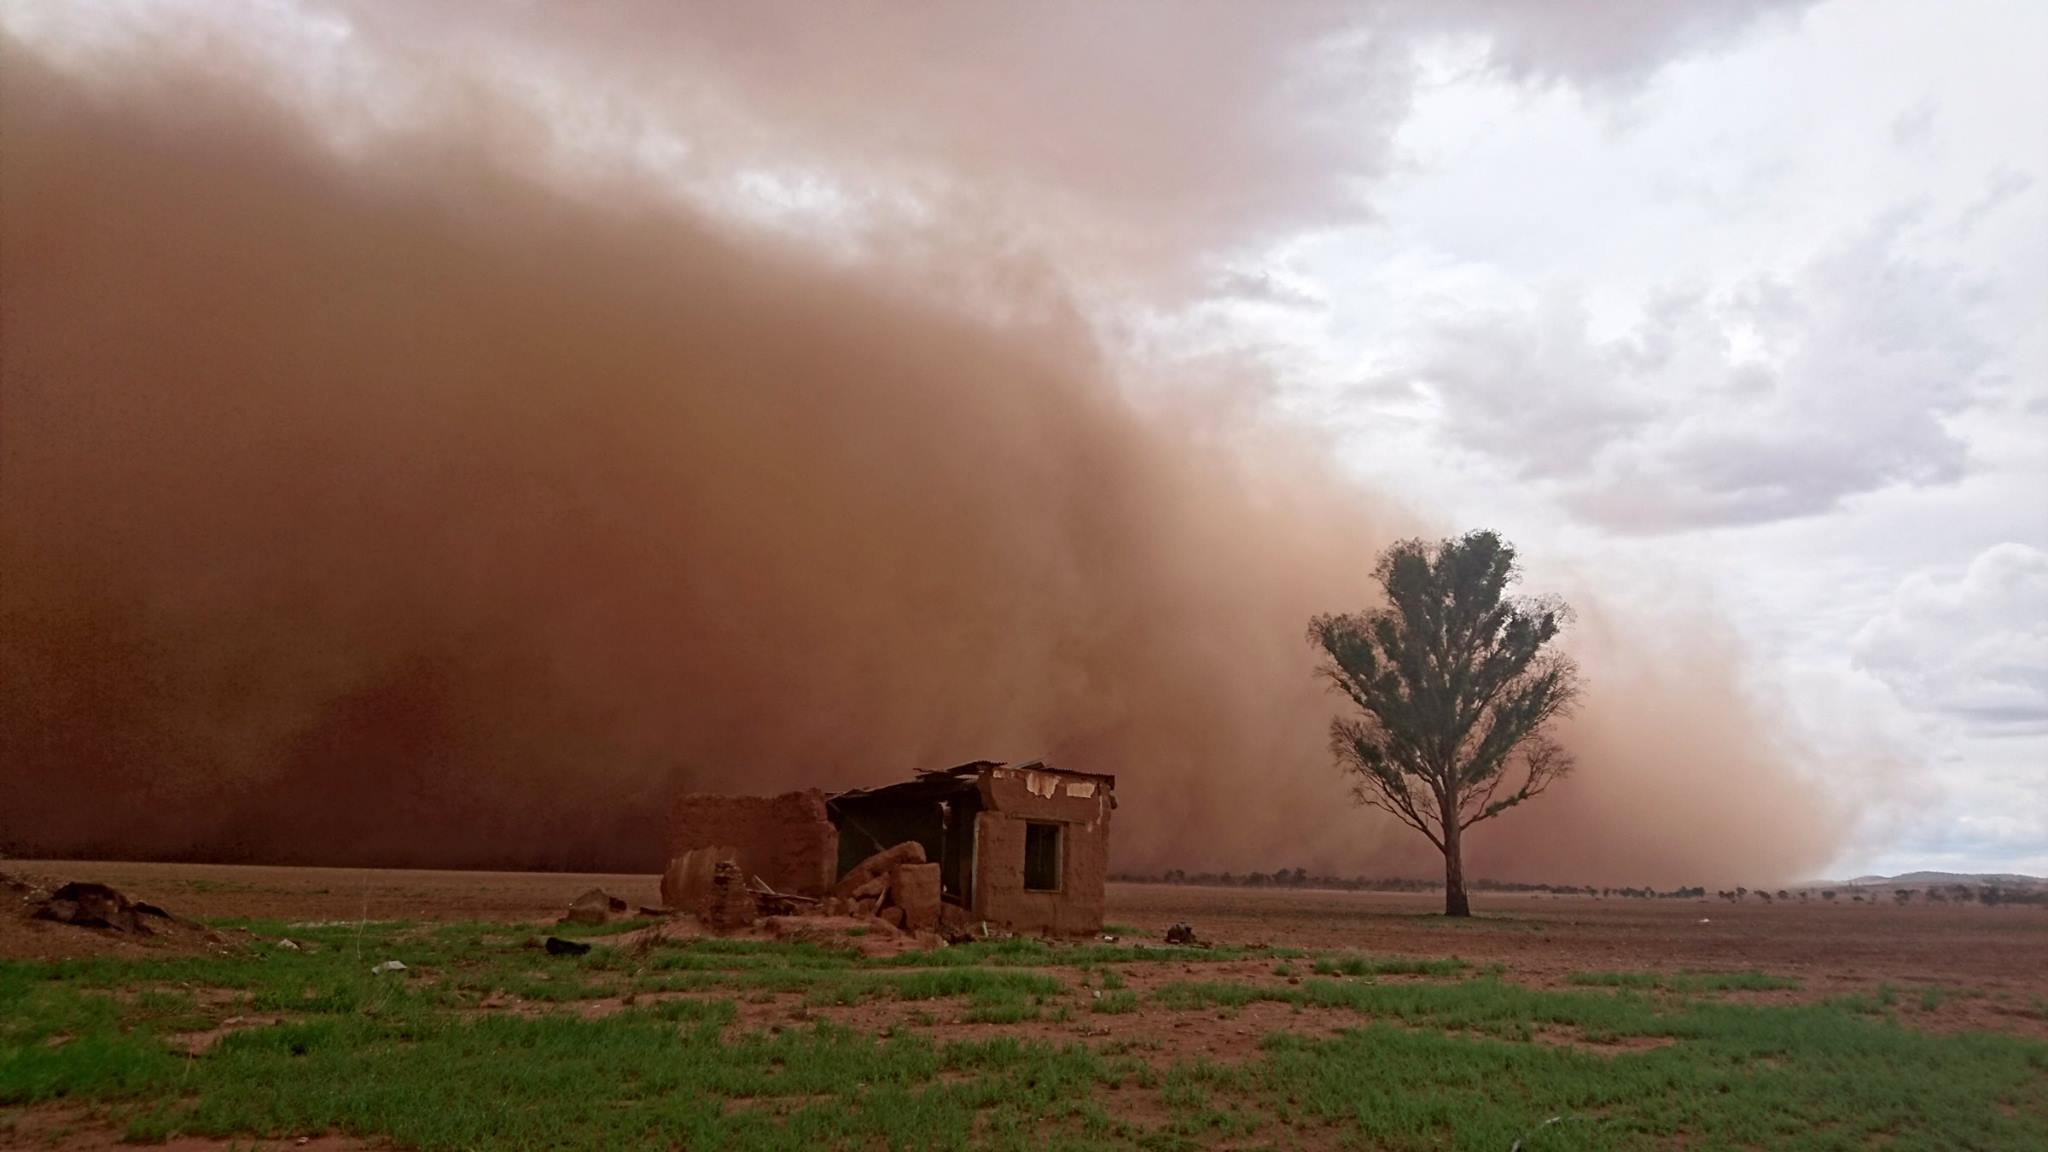 A dust storm rolls through near Freeling, South Australia, 17 March 2016. Credit: Craig Hese